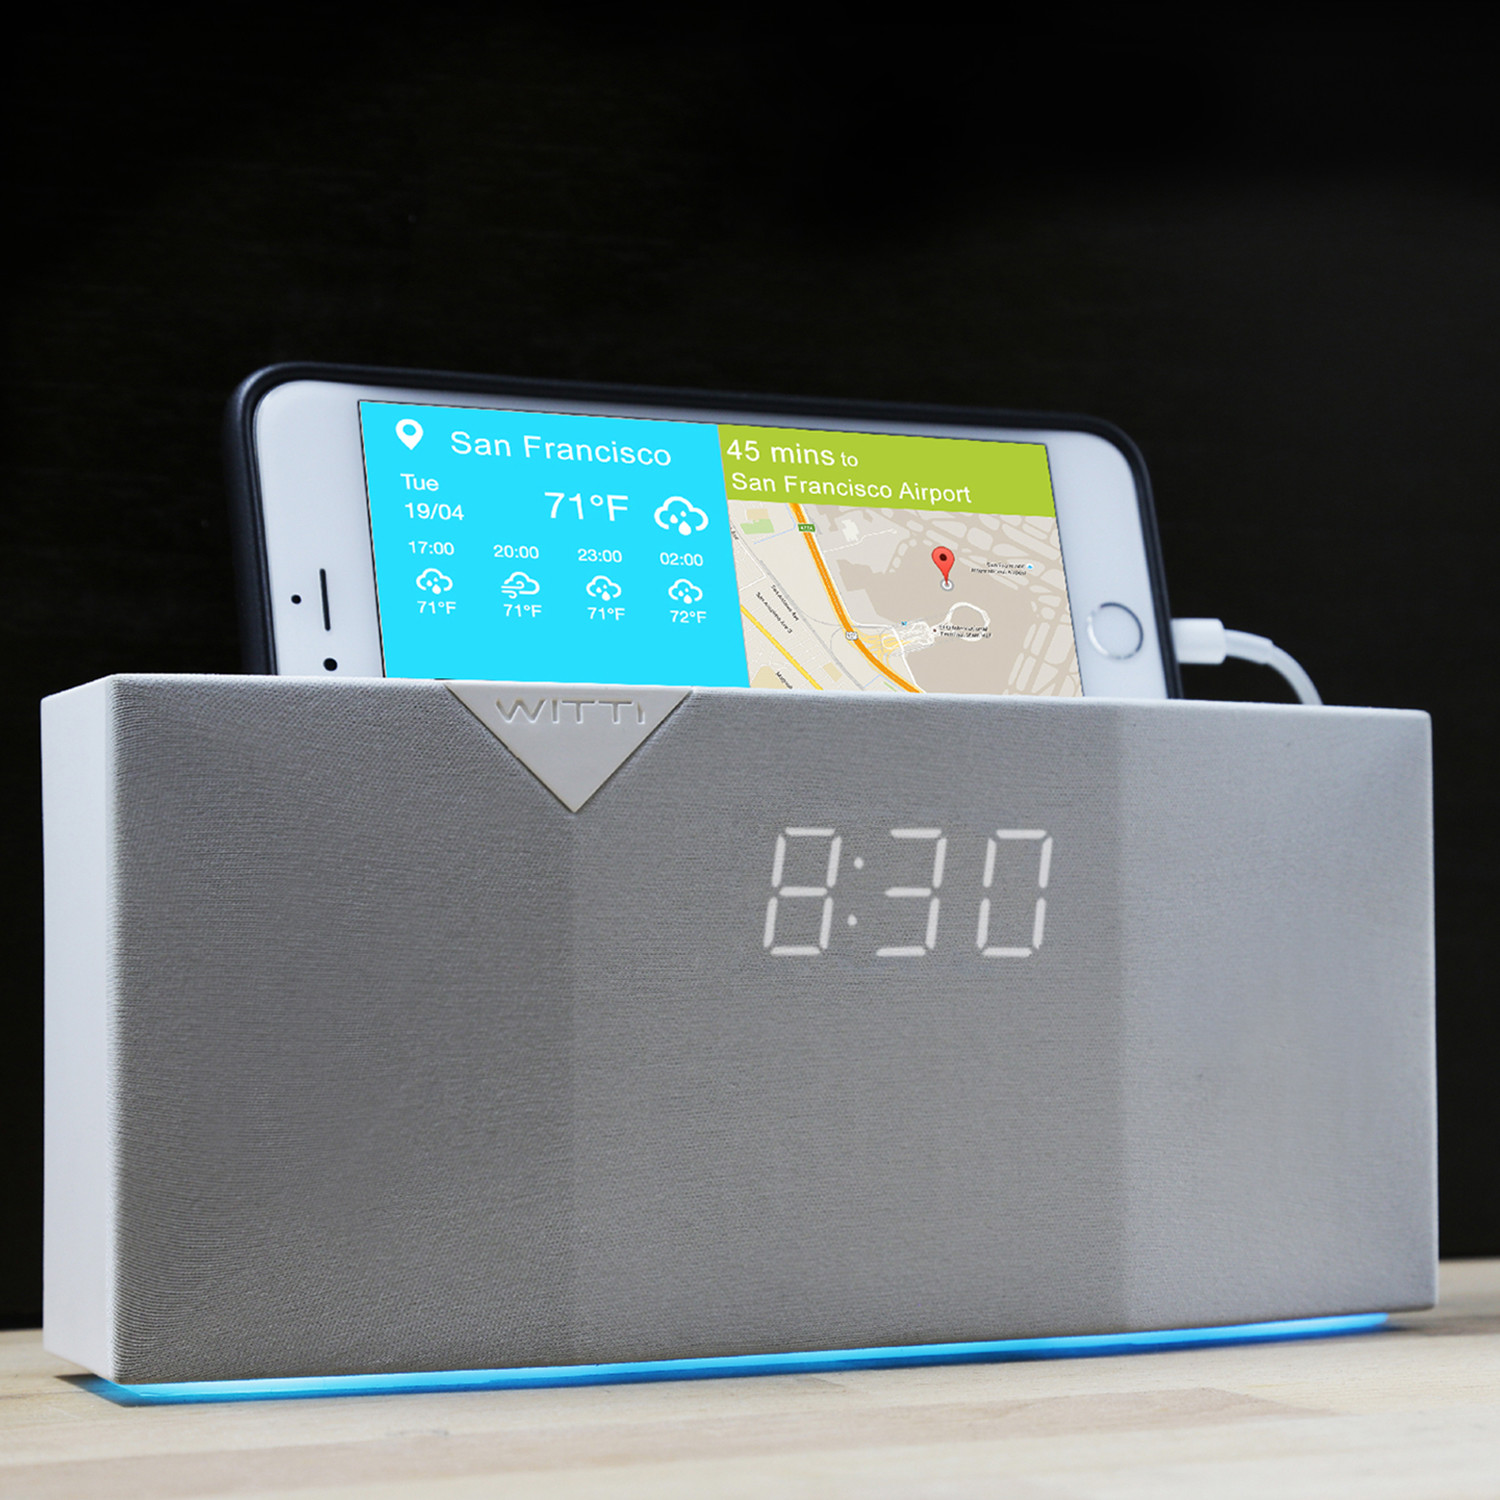 beddi alarm clock instructions